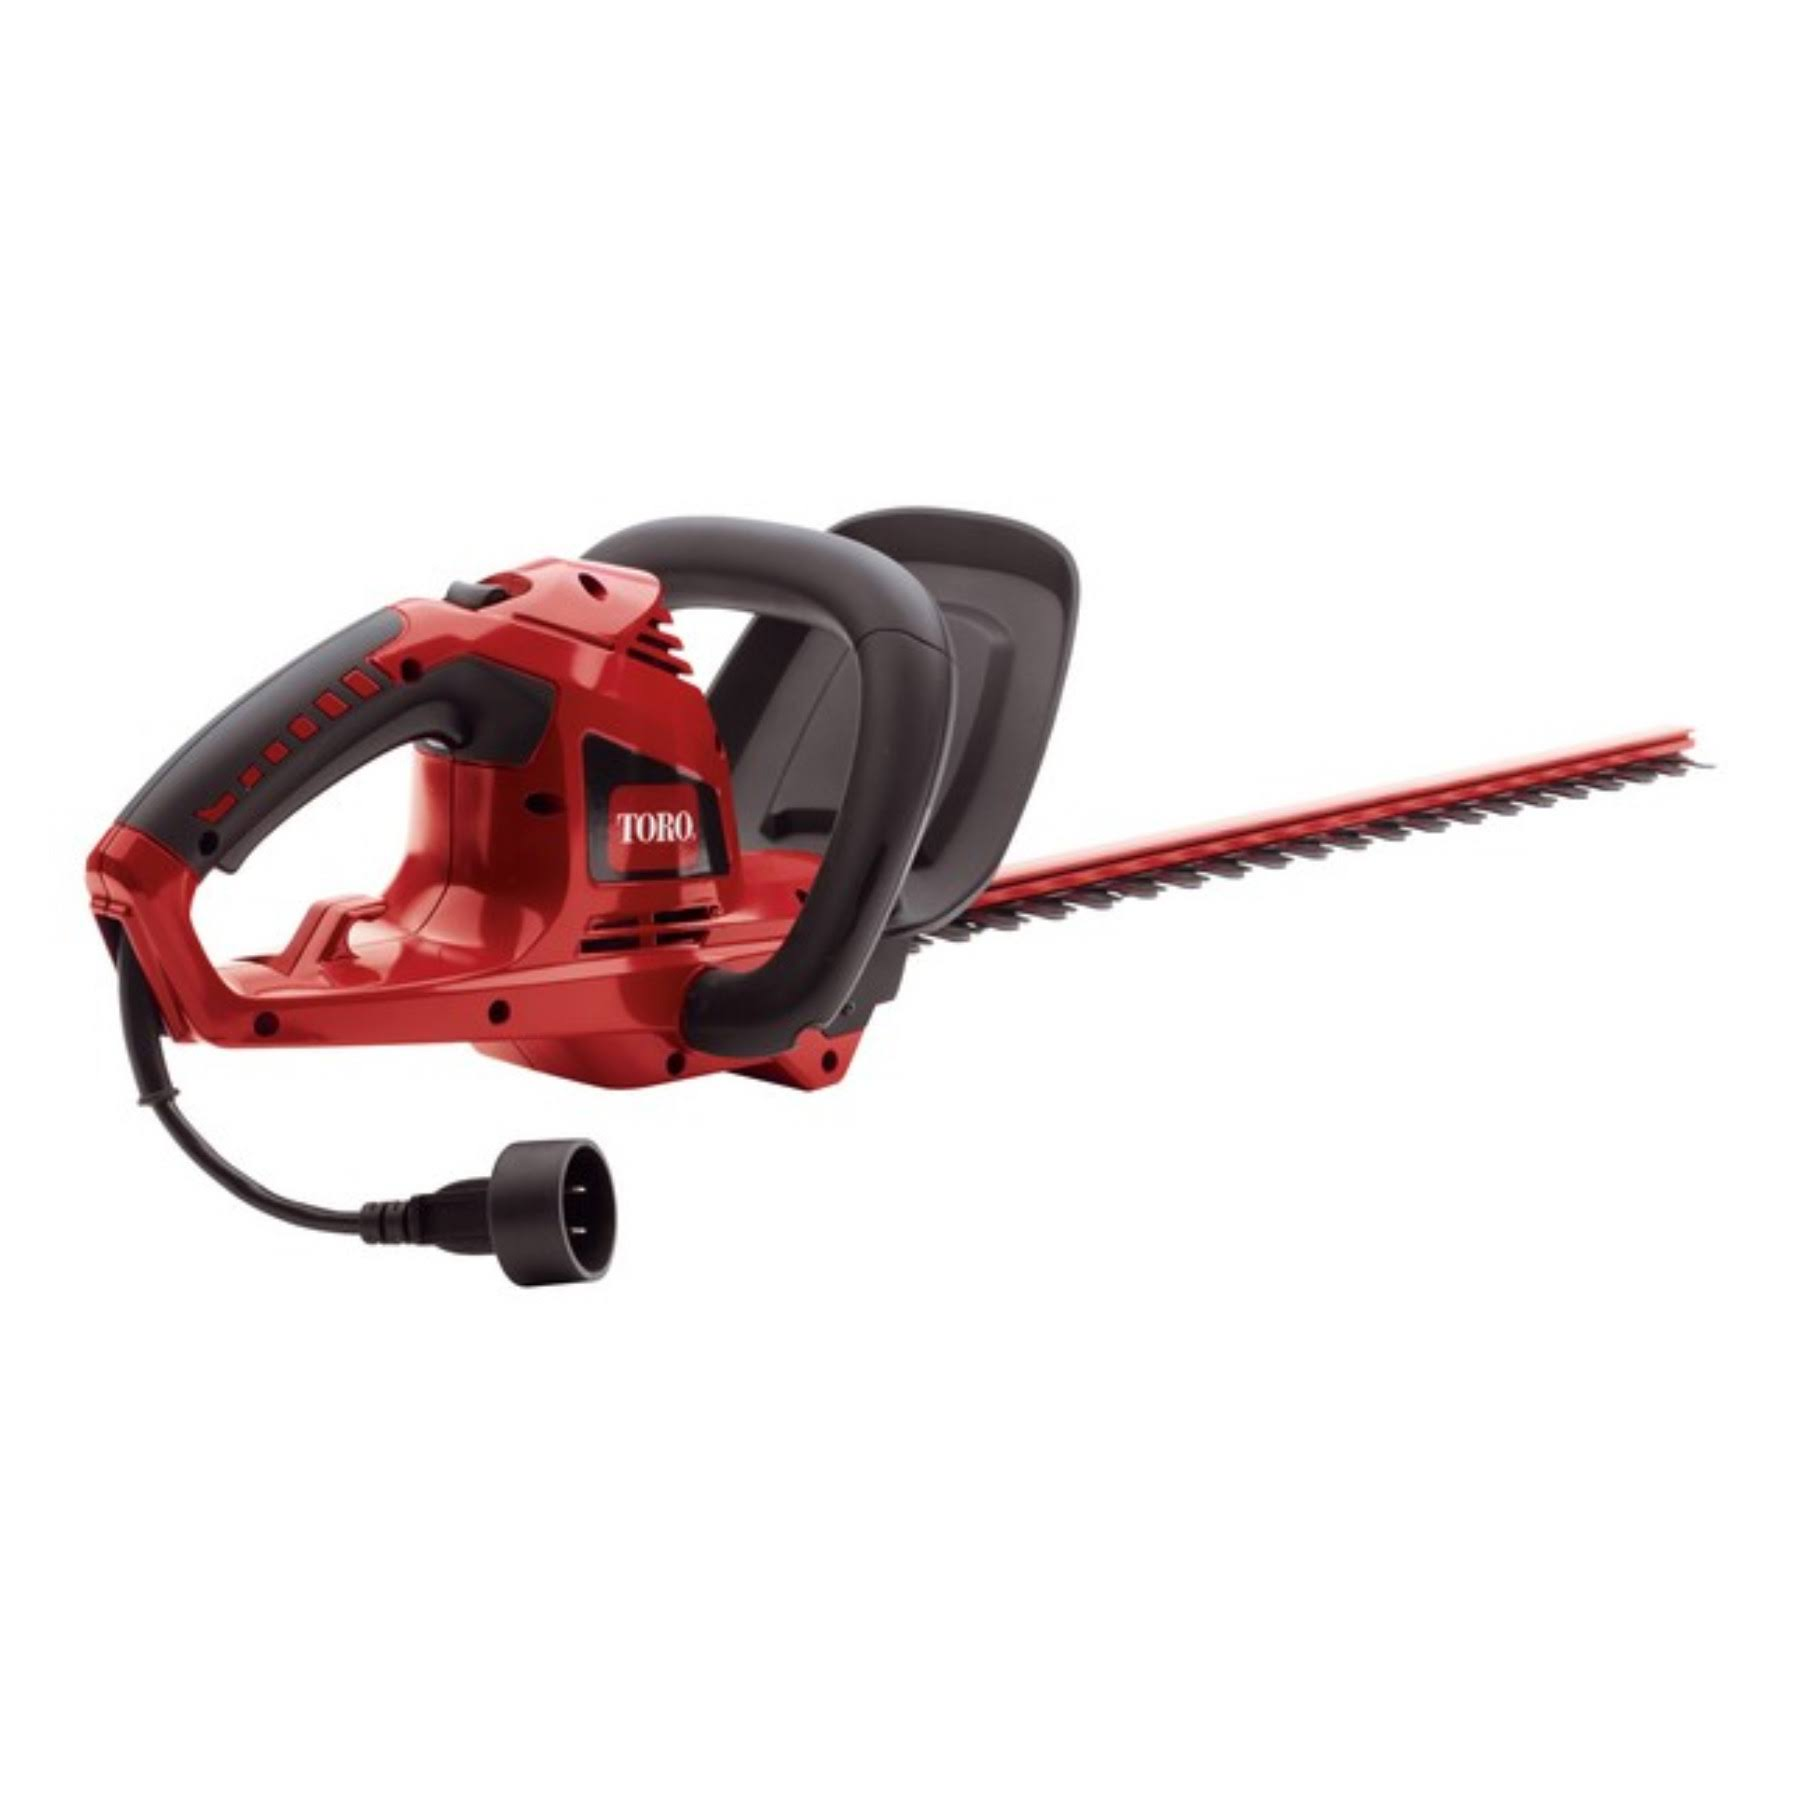 Toro Corded Electric Hedge Trimmer - 22in